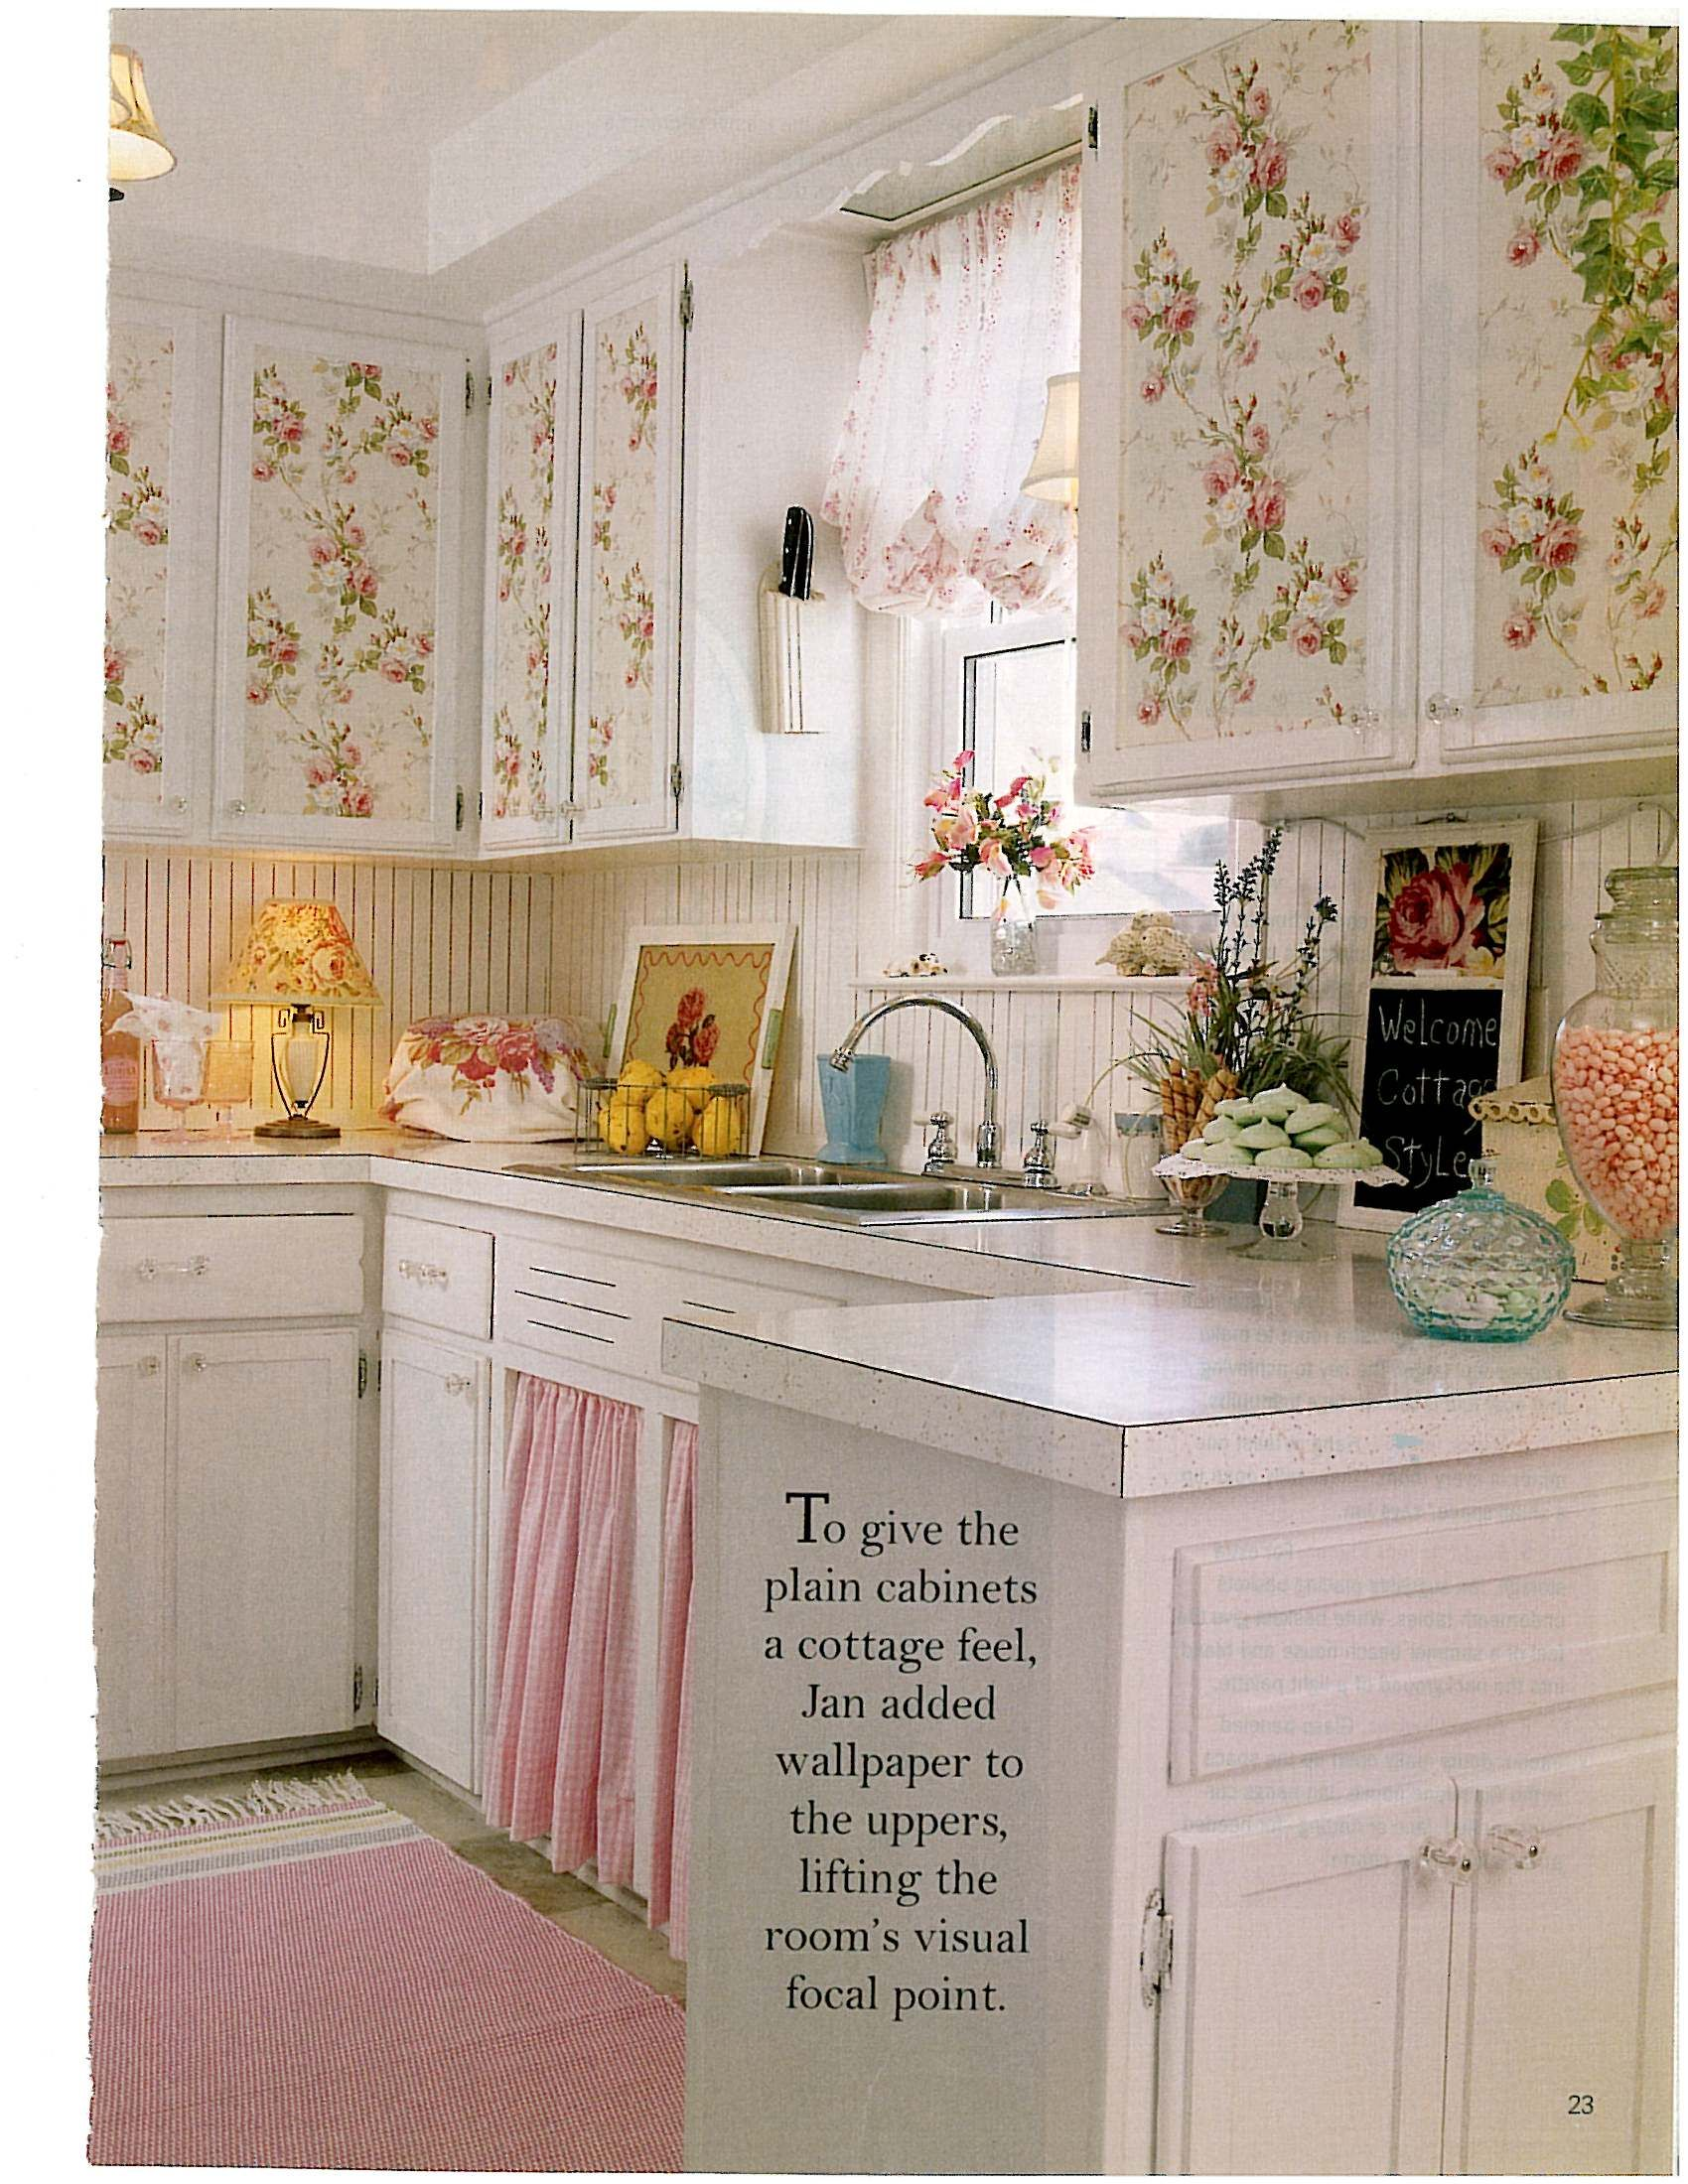 Floral Wallpaper With Roses On Cupboards Attractive Displays On Counter And Under Sink Cu Kitchen Wallpaper Shabby Chic Shabby Chic Kitchen Shabby Chic Plates